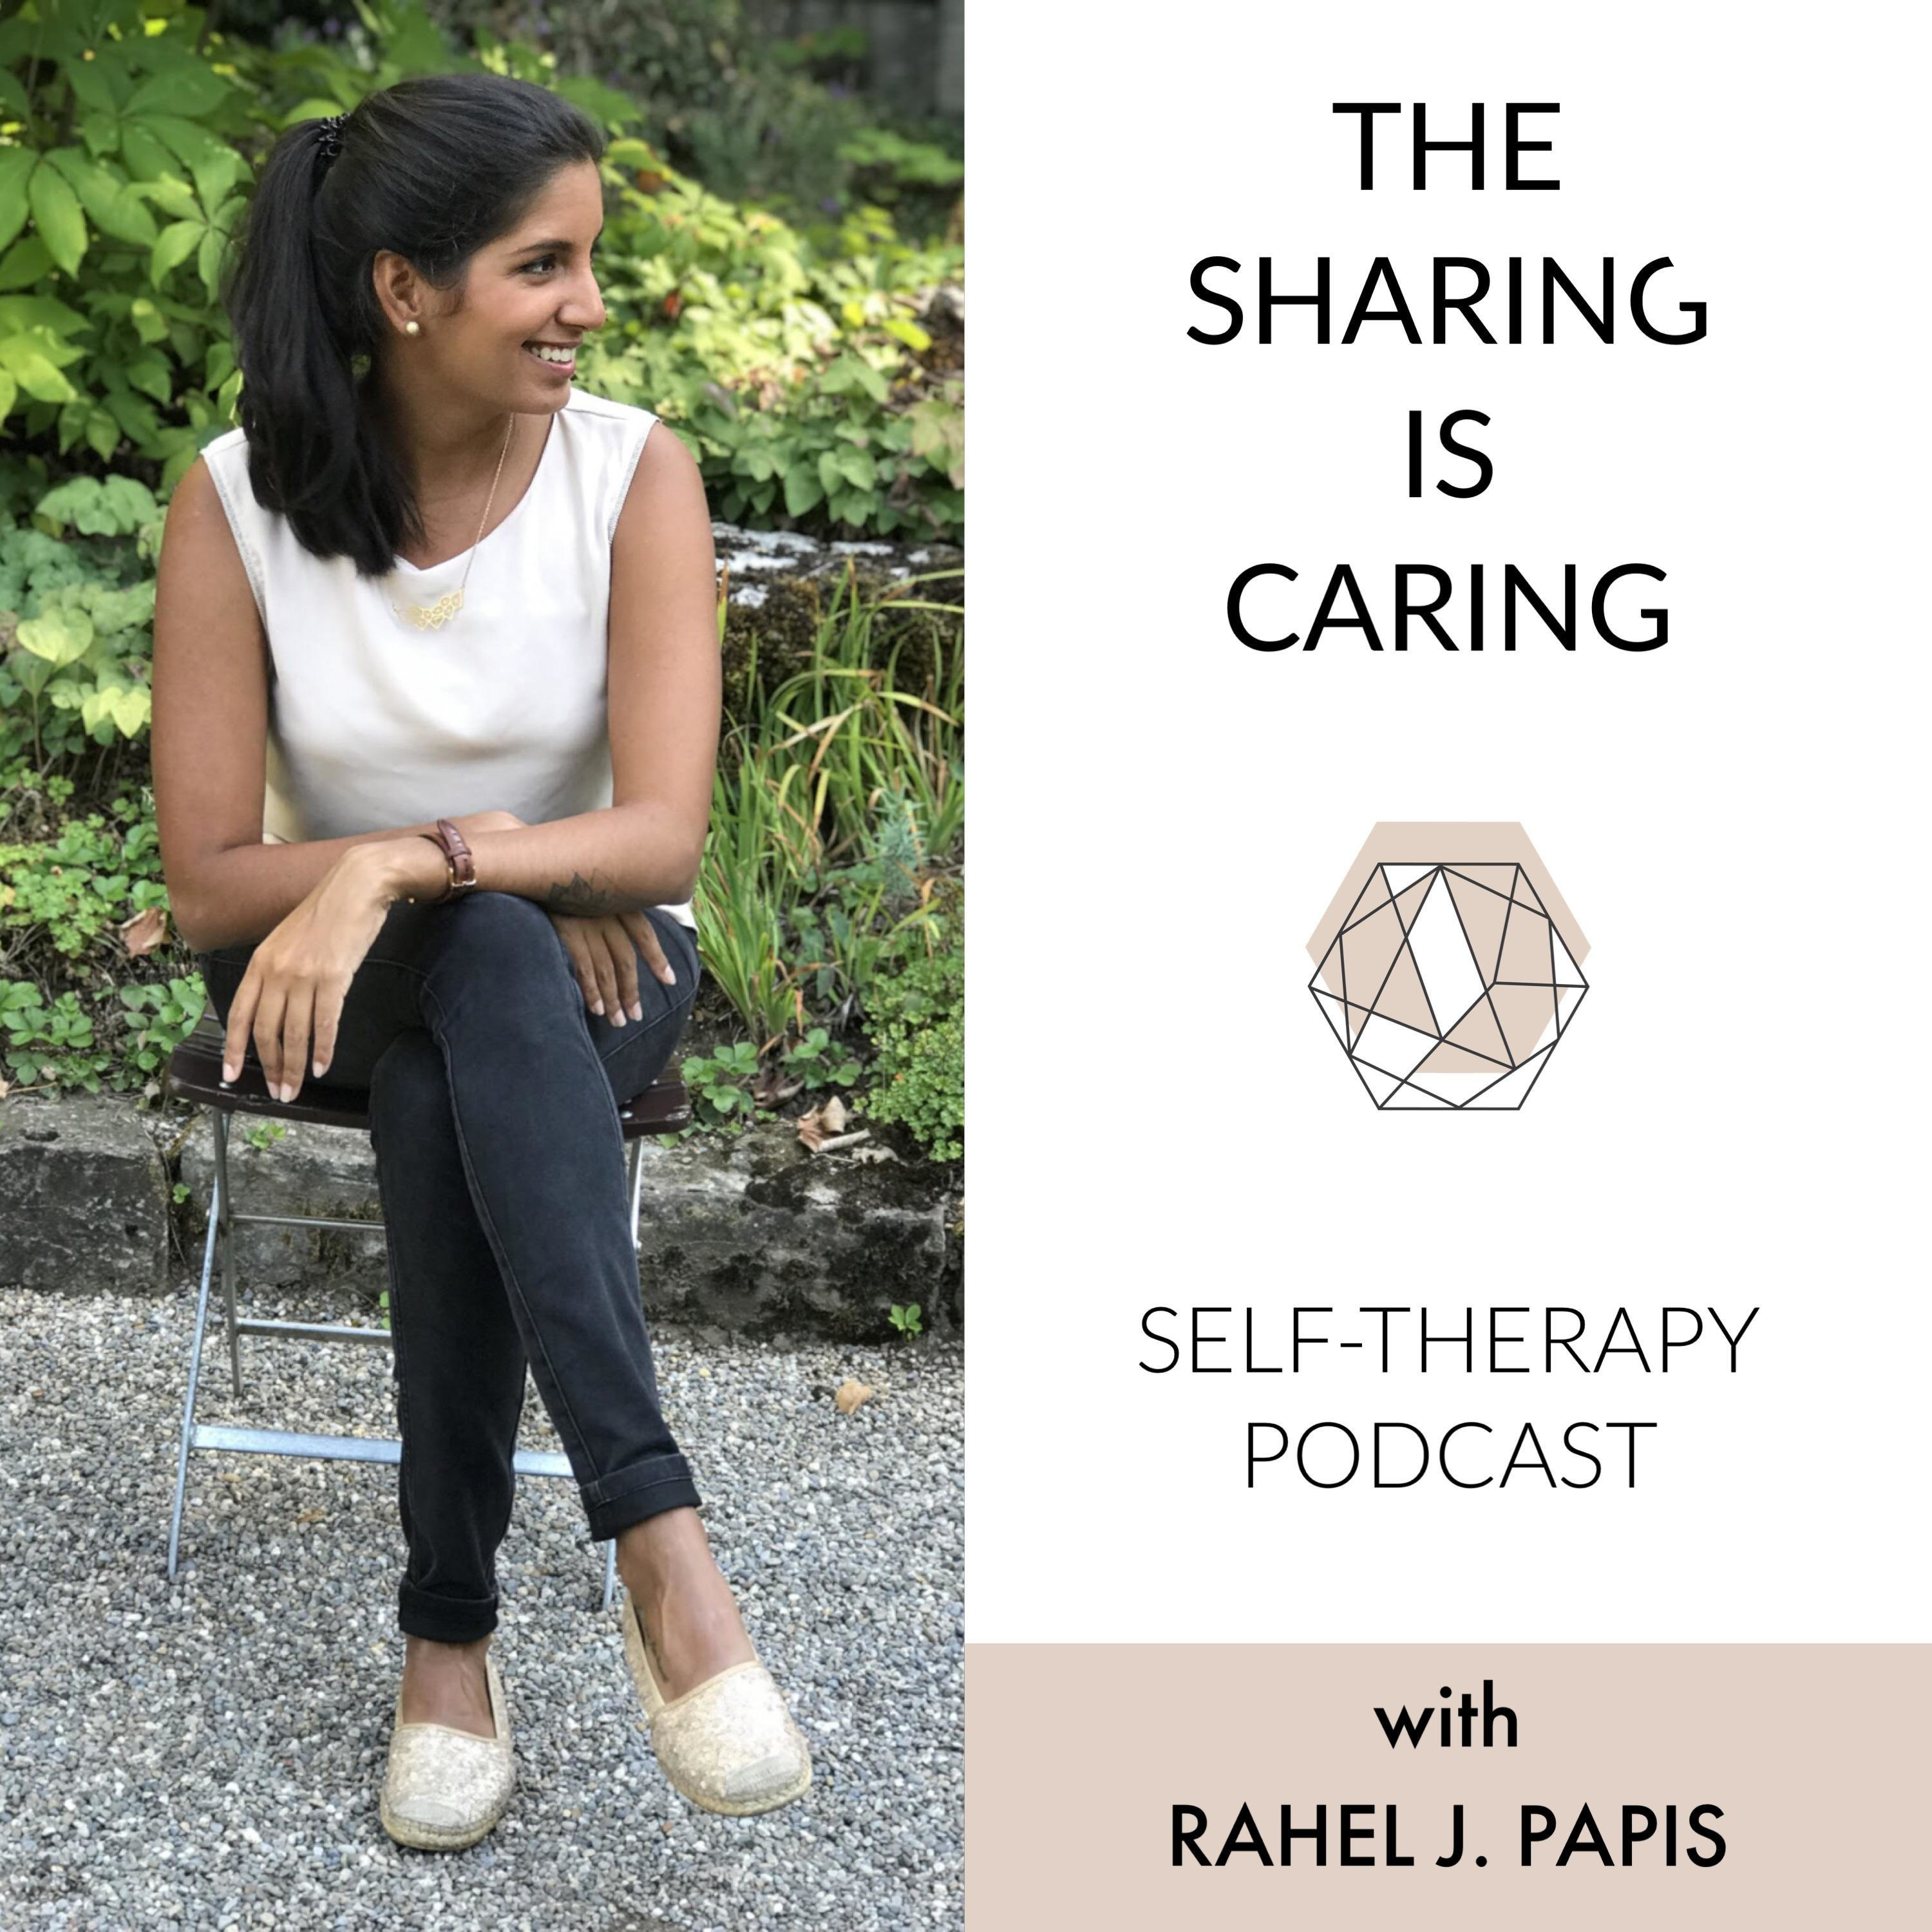 The Sharing is Caring Podcast